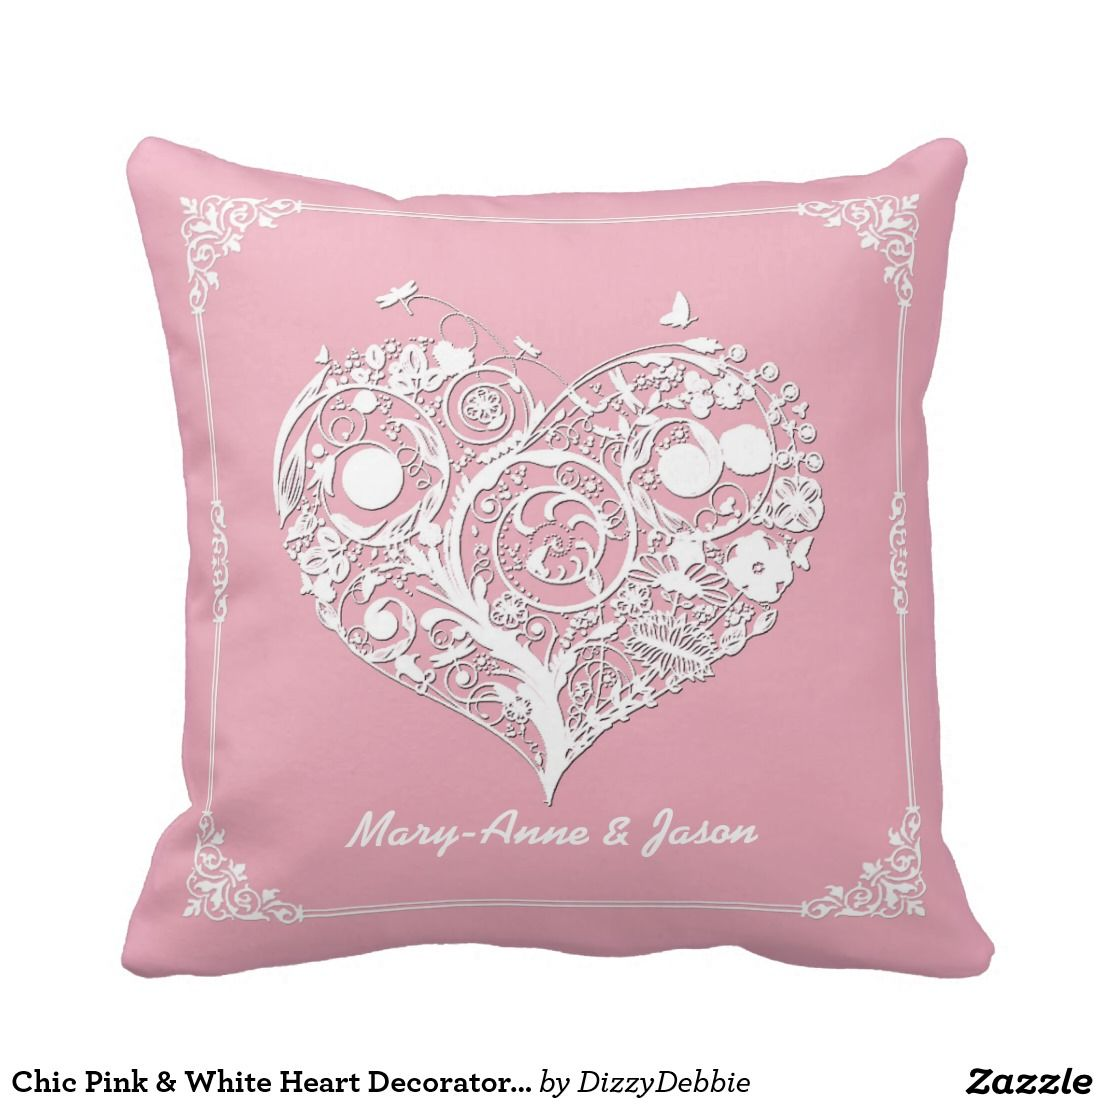 Chic Pink & White Heart Decorator Pillow